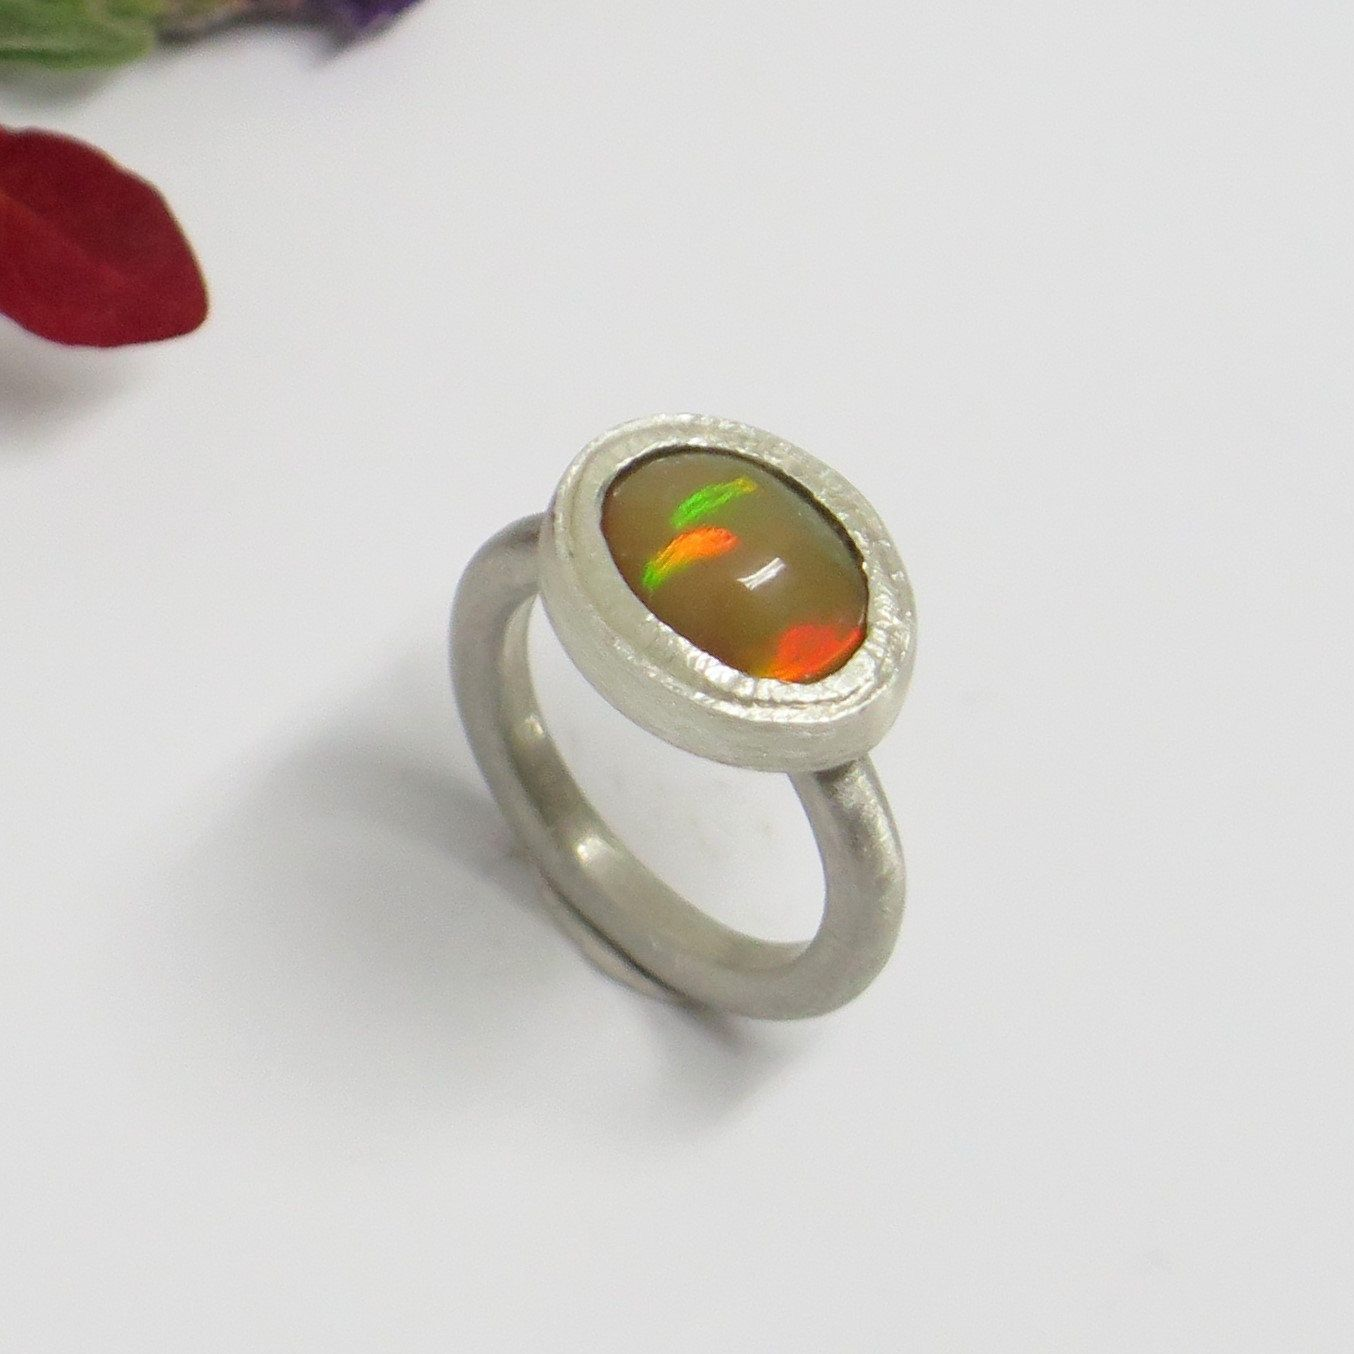 Matte silver Ethiopian Welo opal ring Natural opal promise ring Wide band opal ring Opal cabochon ring Rustic ring Ecofriendly ring Matte silver Ethiopian Welo opal ring...